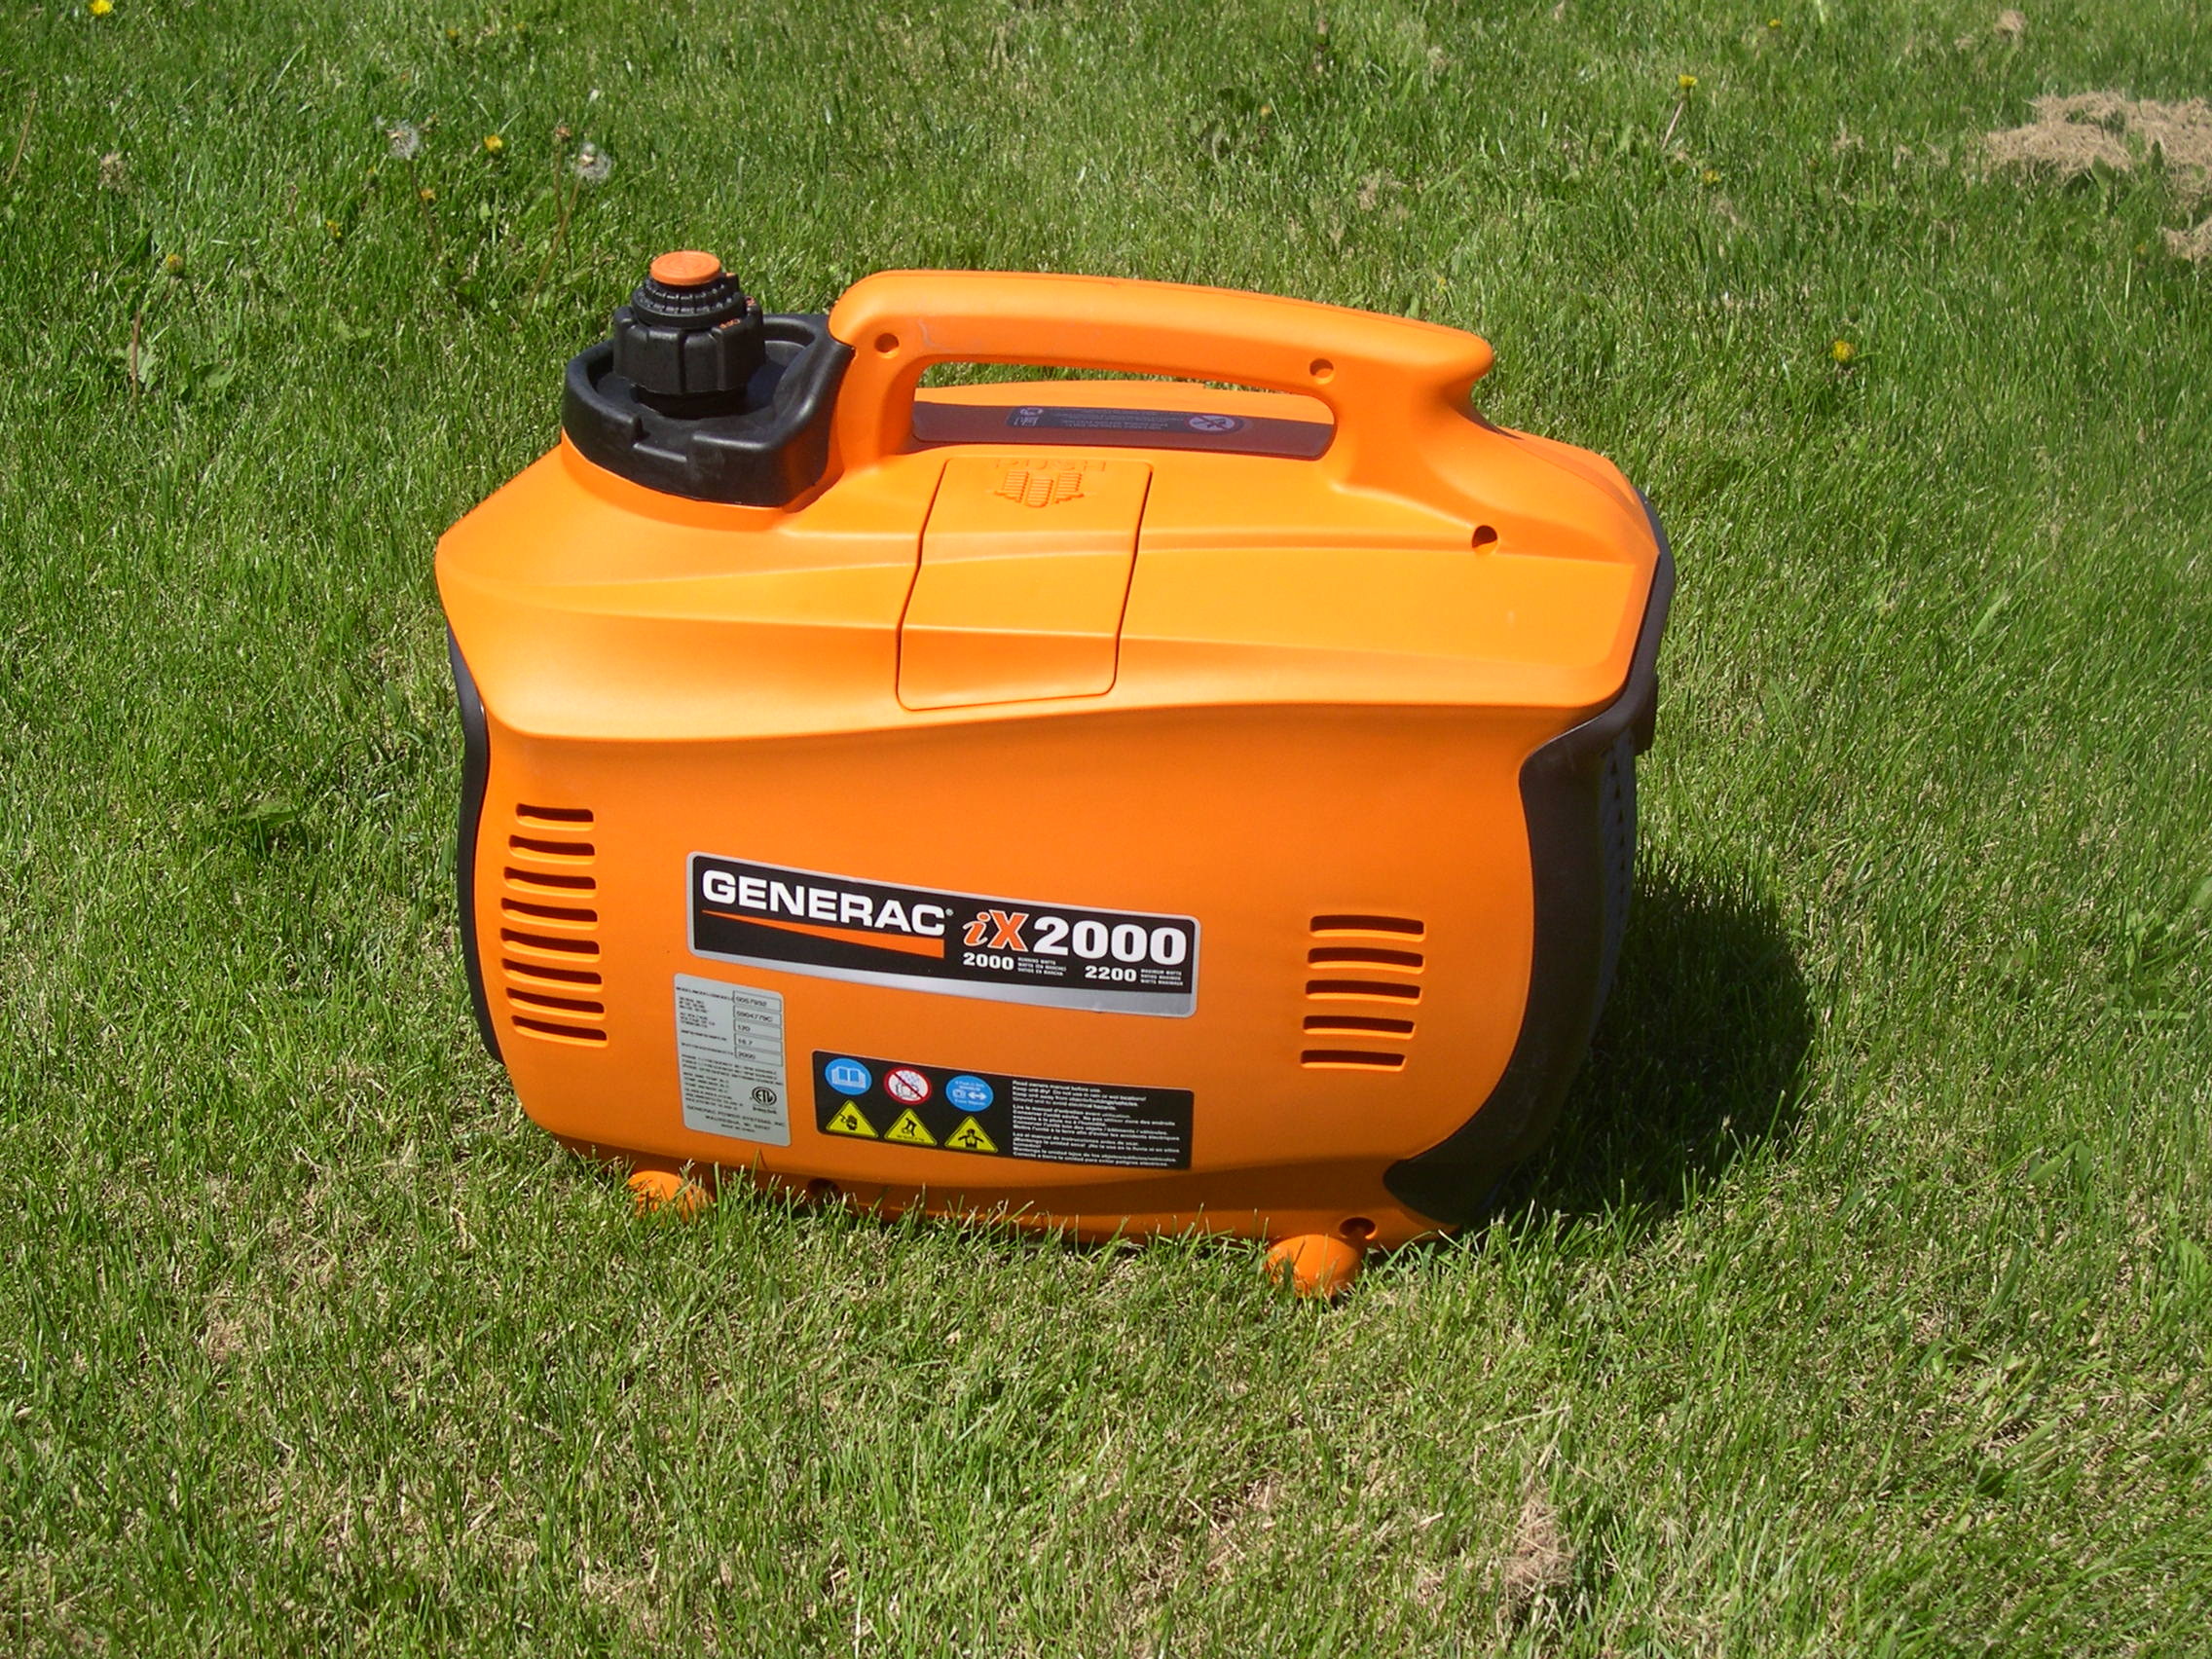 hyundai ideal outdoor product perfect petrol honda tools a generator for the is power